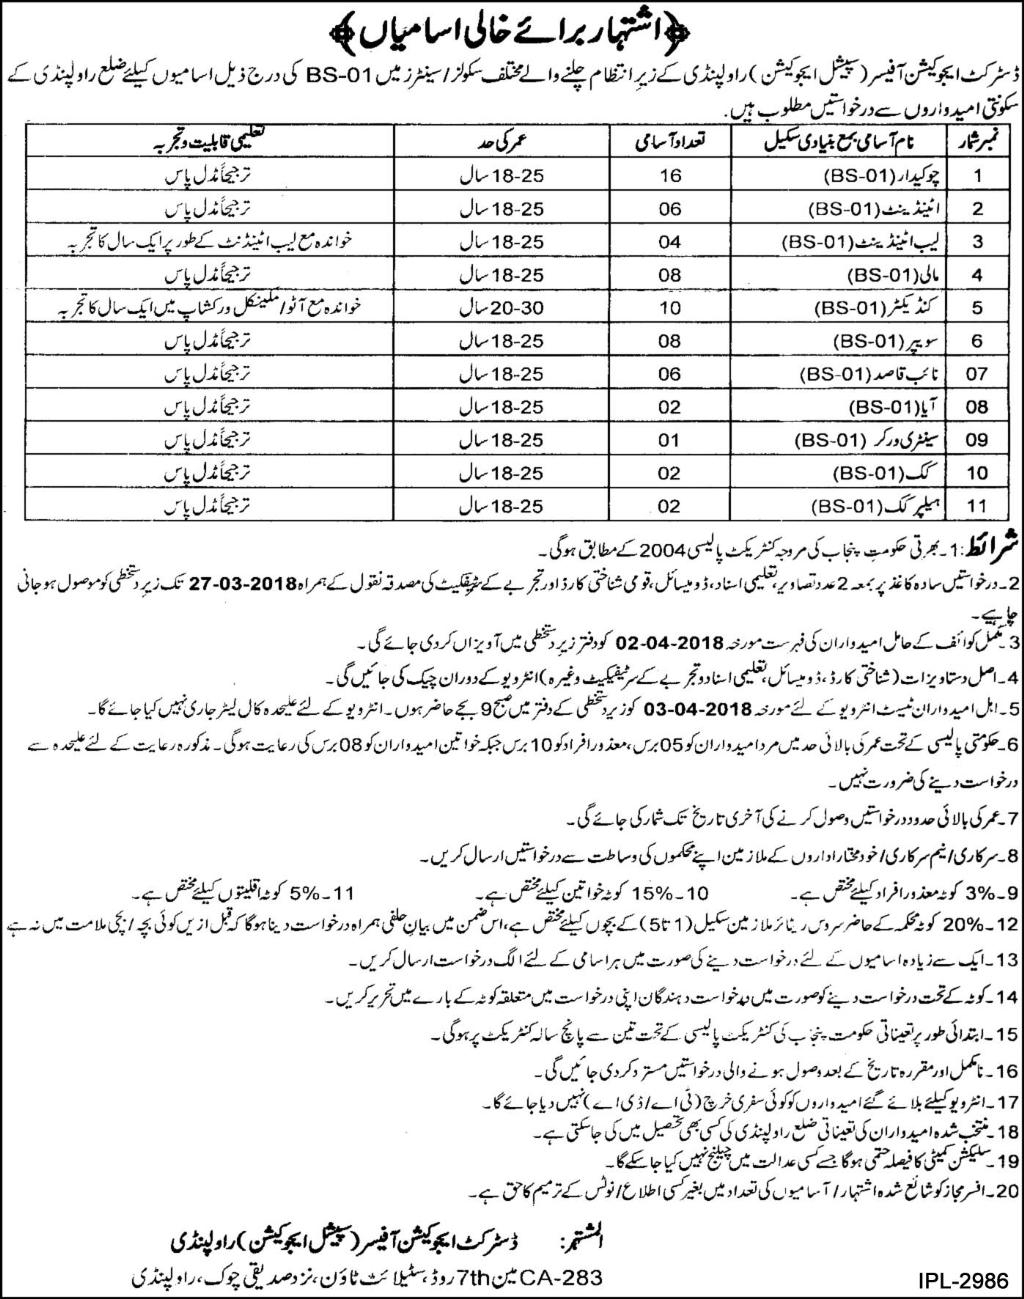 Special Education Center Rawalpindi 65 Jobs 09 March 2018 Daily Express Newspaper